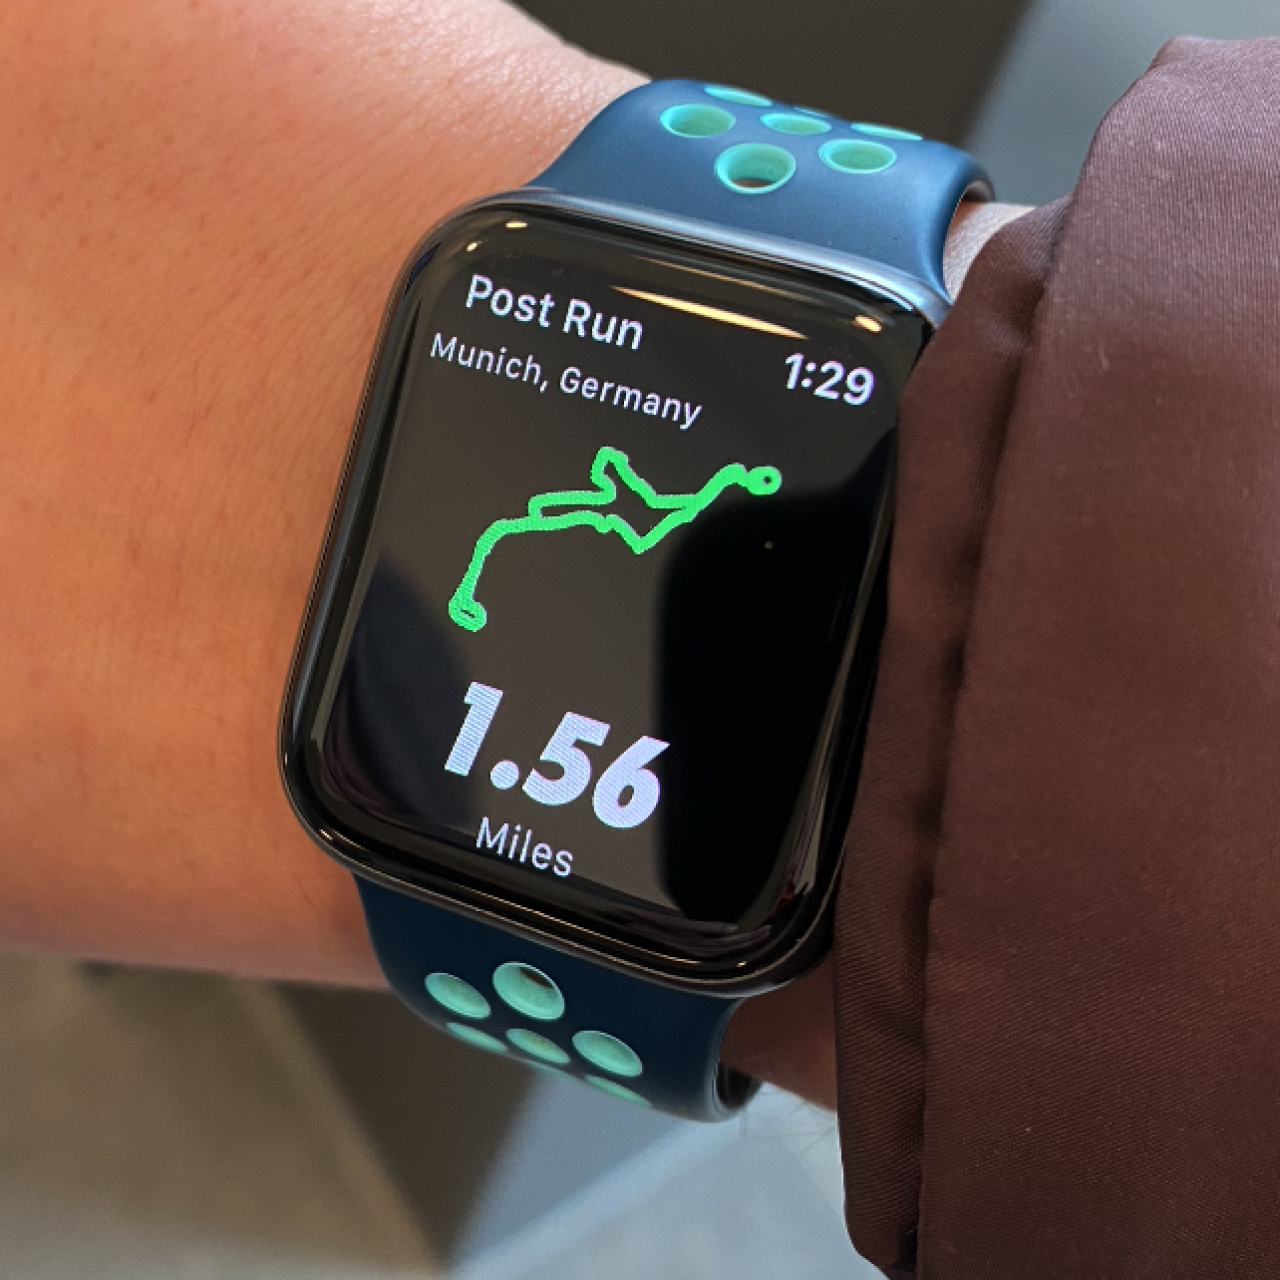 Photo of an Apple Watch on a person's wrist displaying a Nike Running summary screen